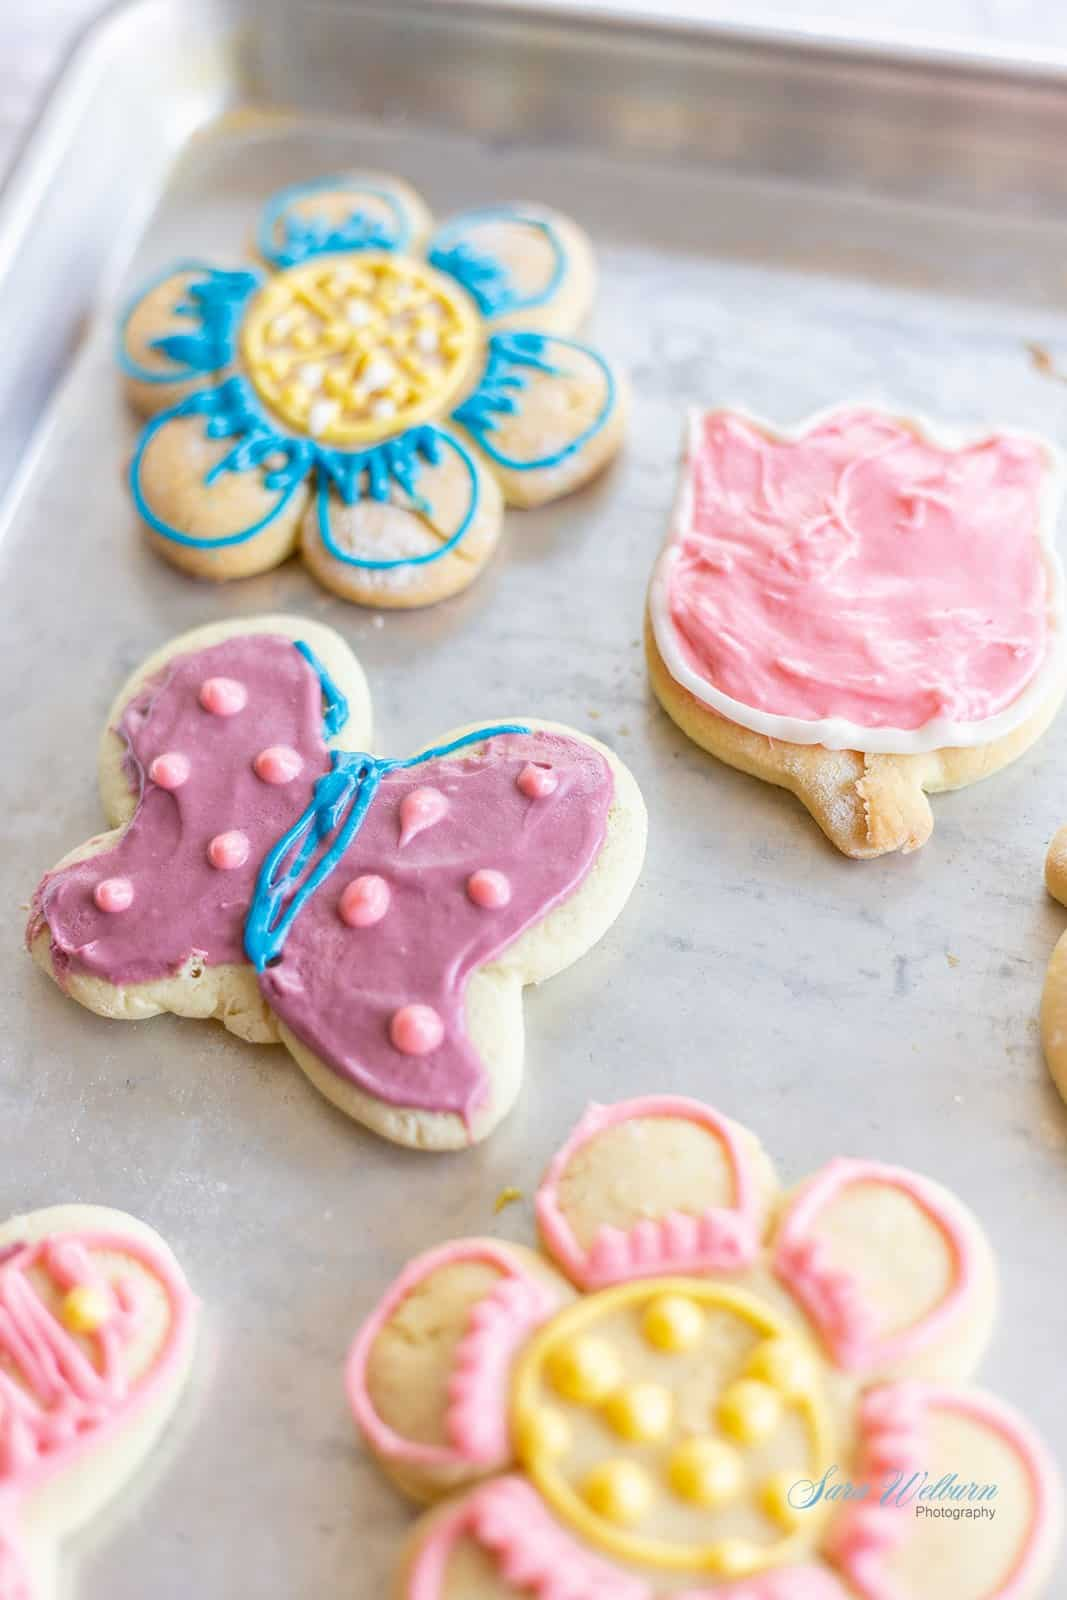 Spring Sour Cream Sugar Cookies with Cream Cheese Frosting